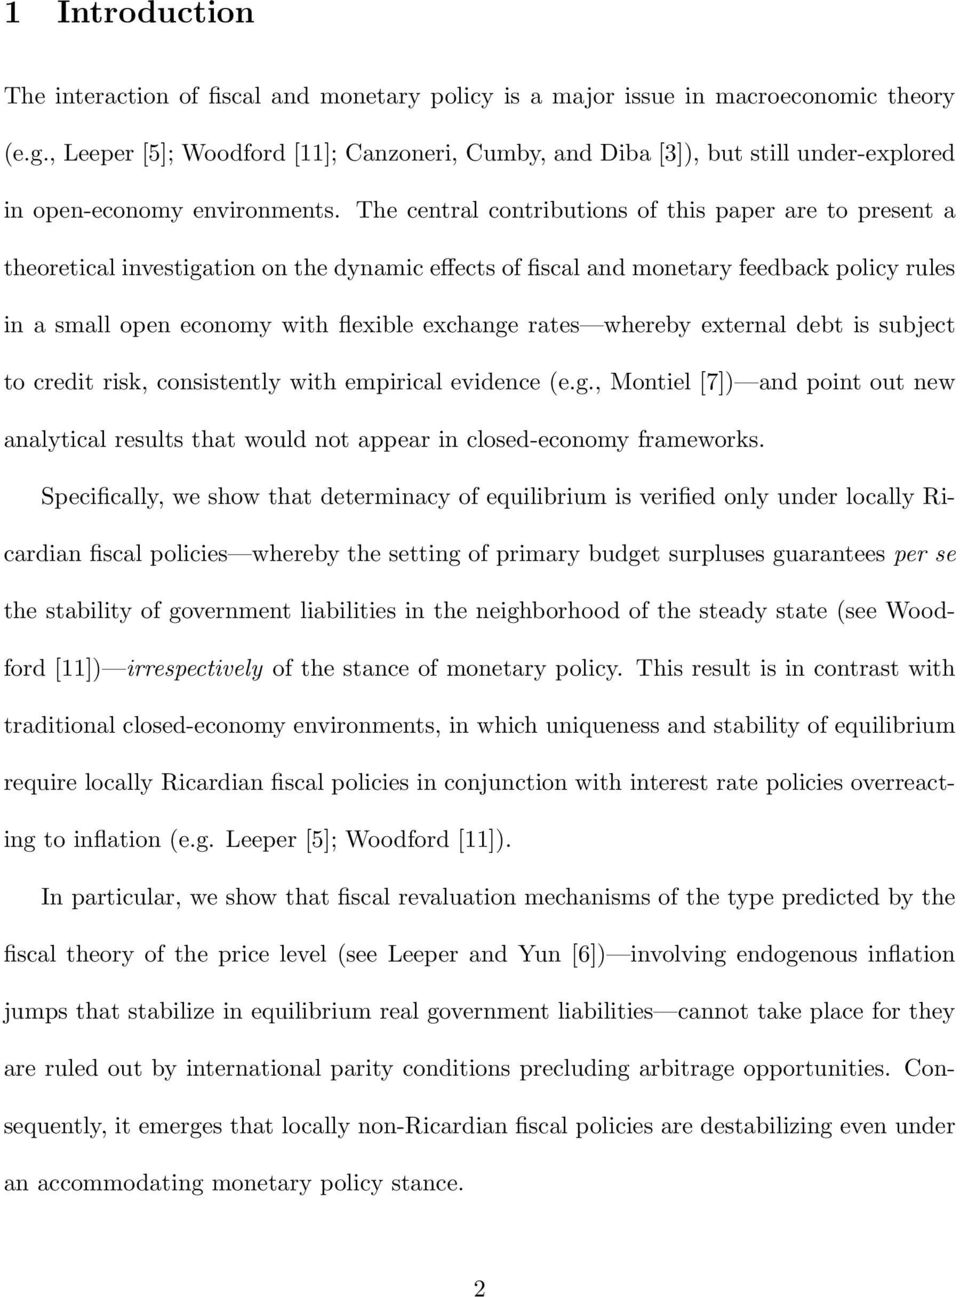 The central contributions of this paper are to present a theoretical investigation on the dynamic effects of fiscal and monetary feedback policy rules in a small open economy with flexible exchange